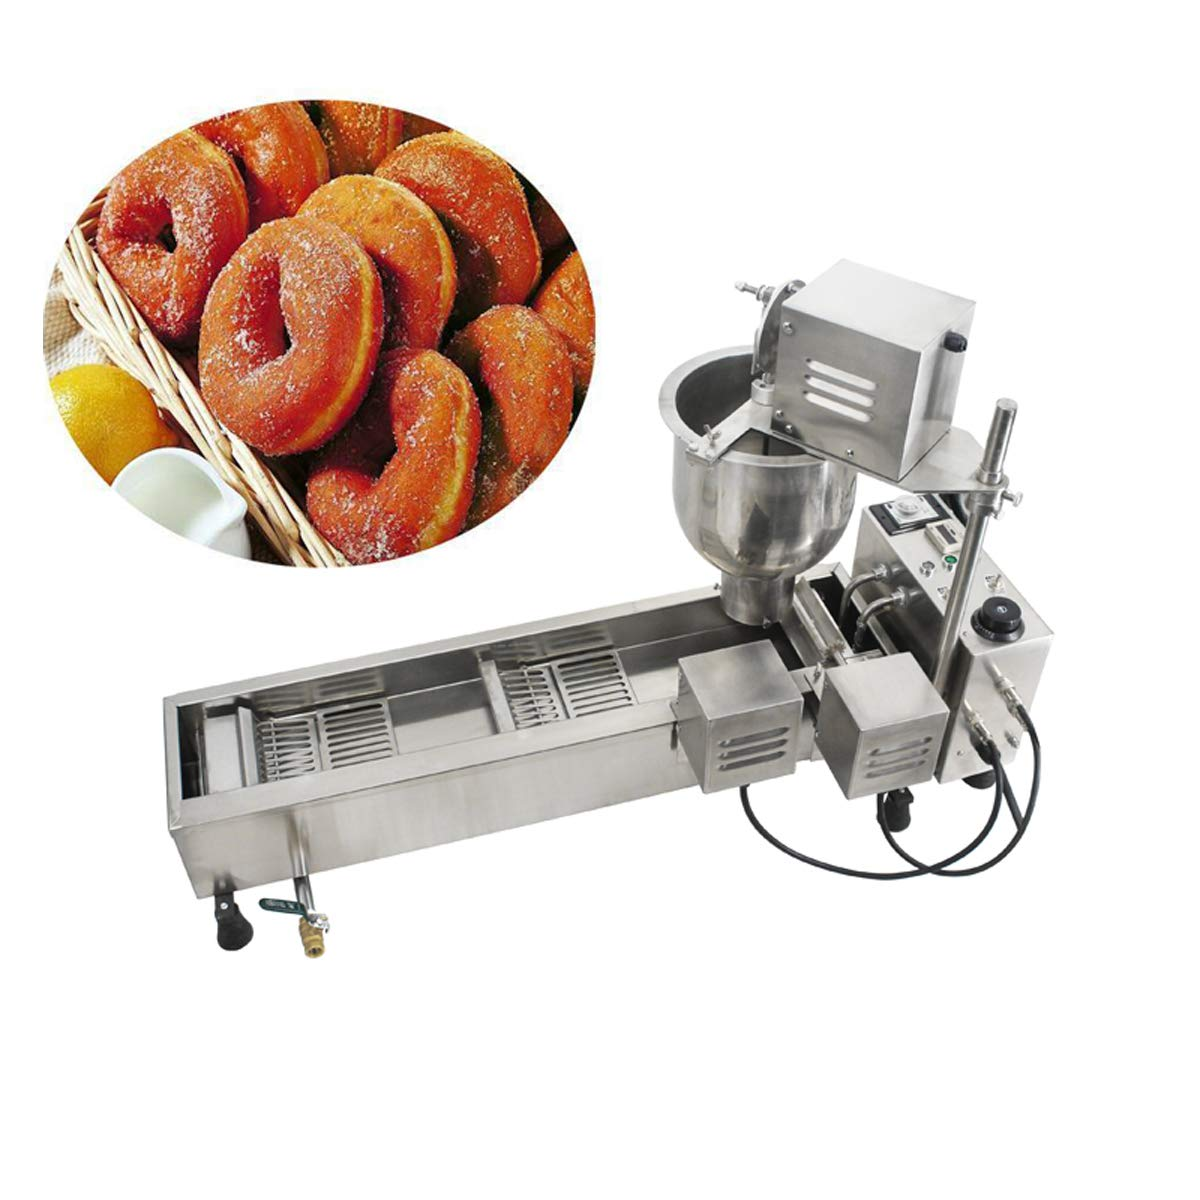 INTBUYING Donut Frying Machine Commercial Full Automatic Donut Maker Wide Oil Tank 220V by INTBUYING